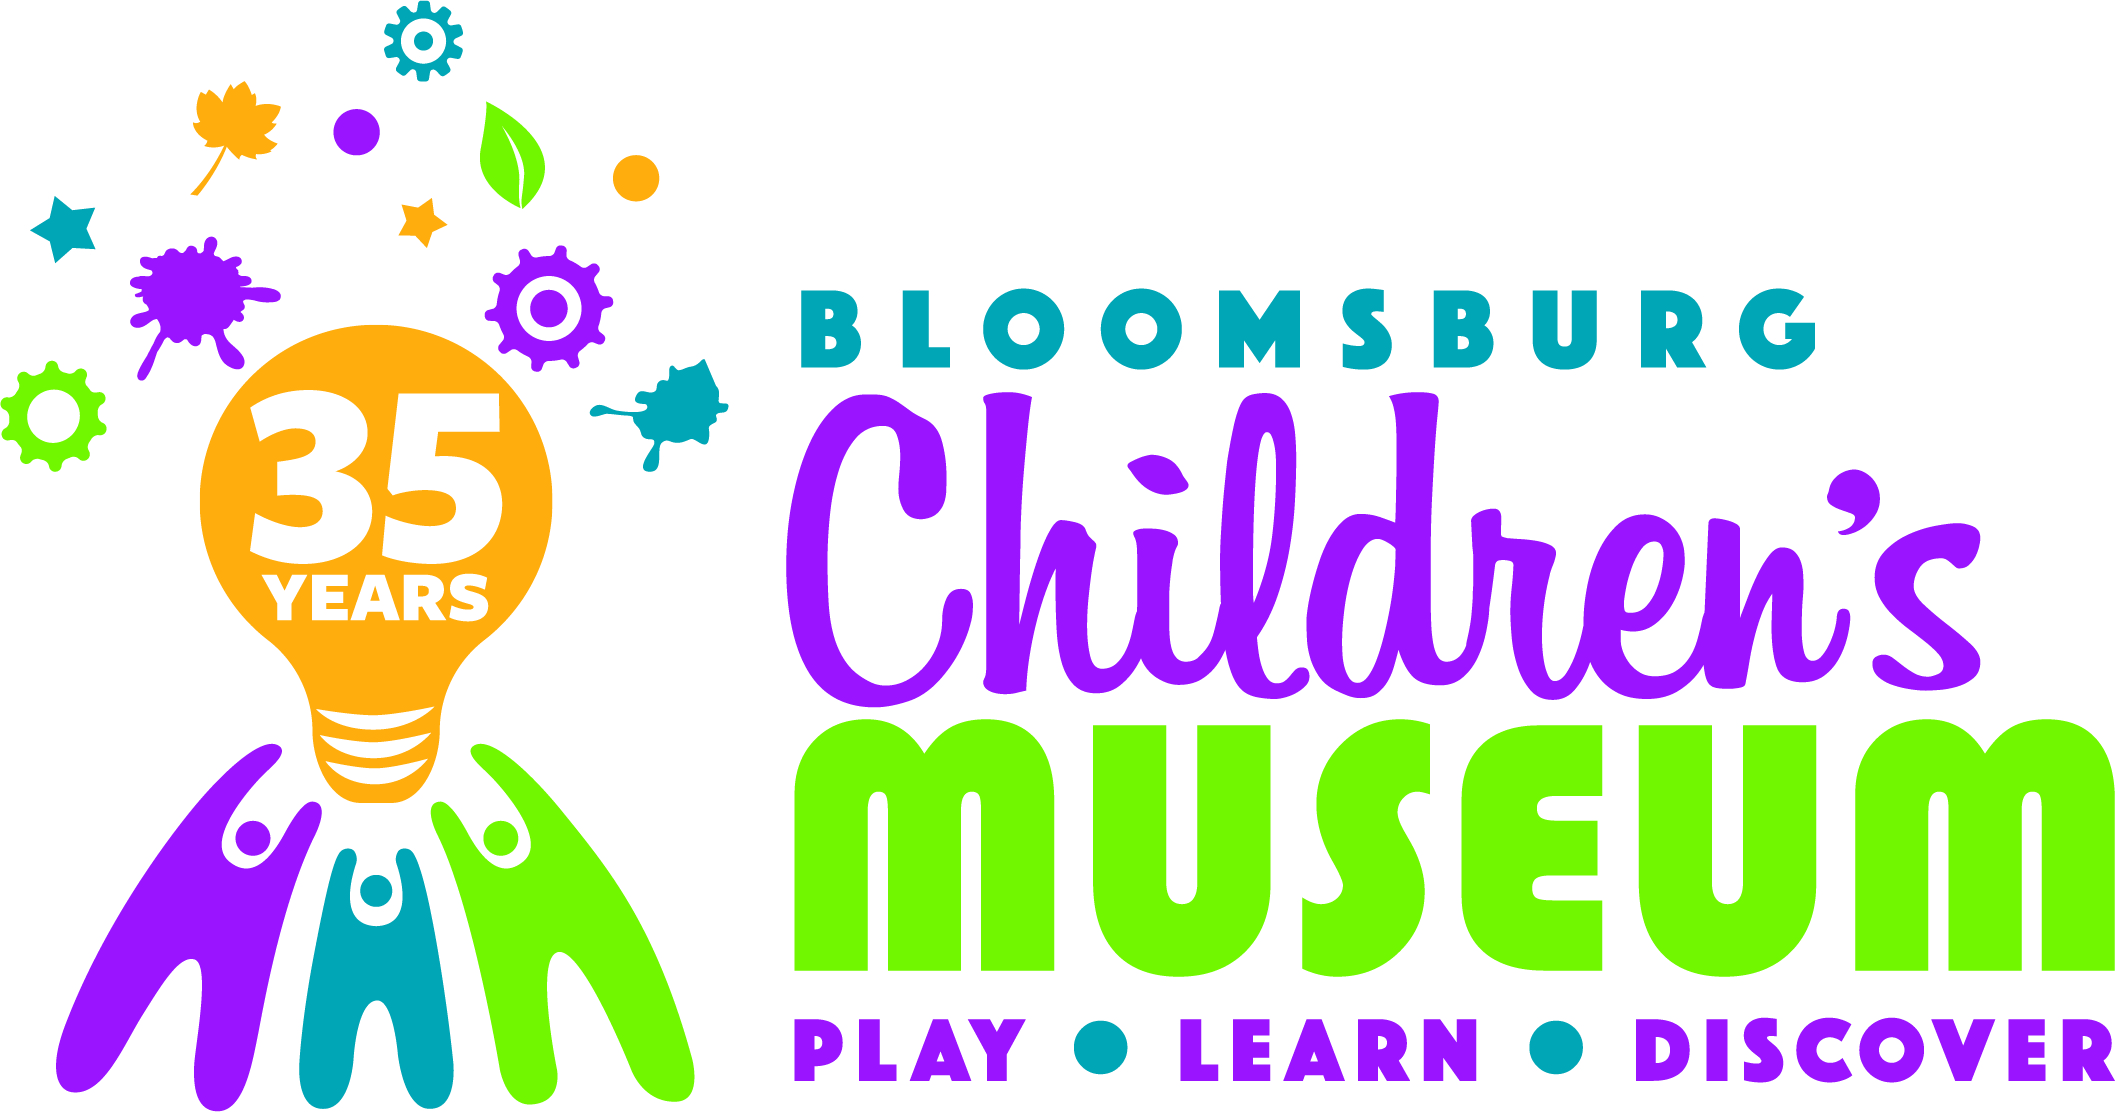 The Bloomsburg Children's Museum